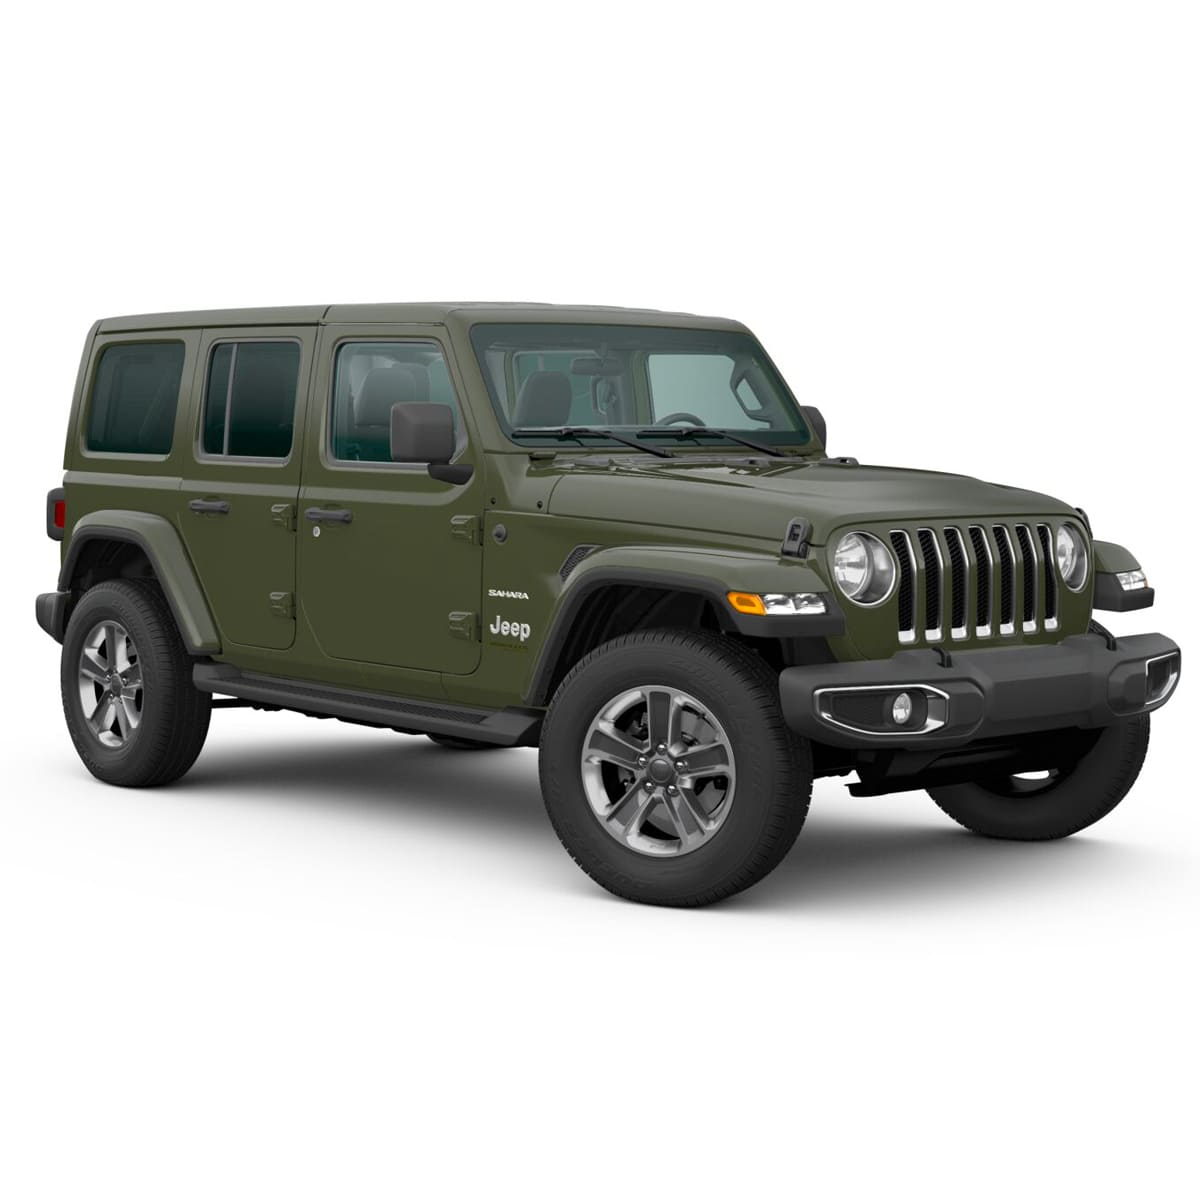 Jeep ALL NEW WRANGLER UNLIMITED SAHARA 4X4 3.6L AT